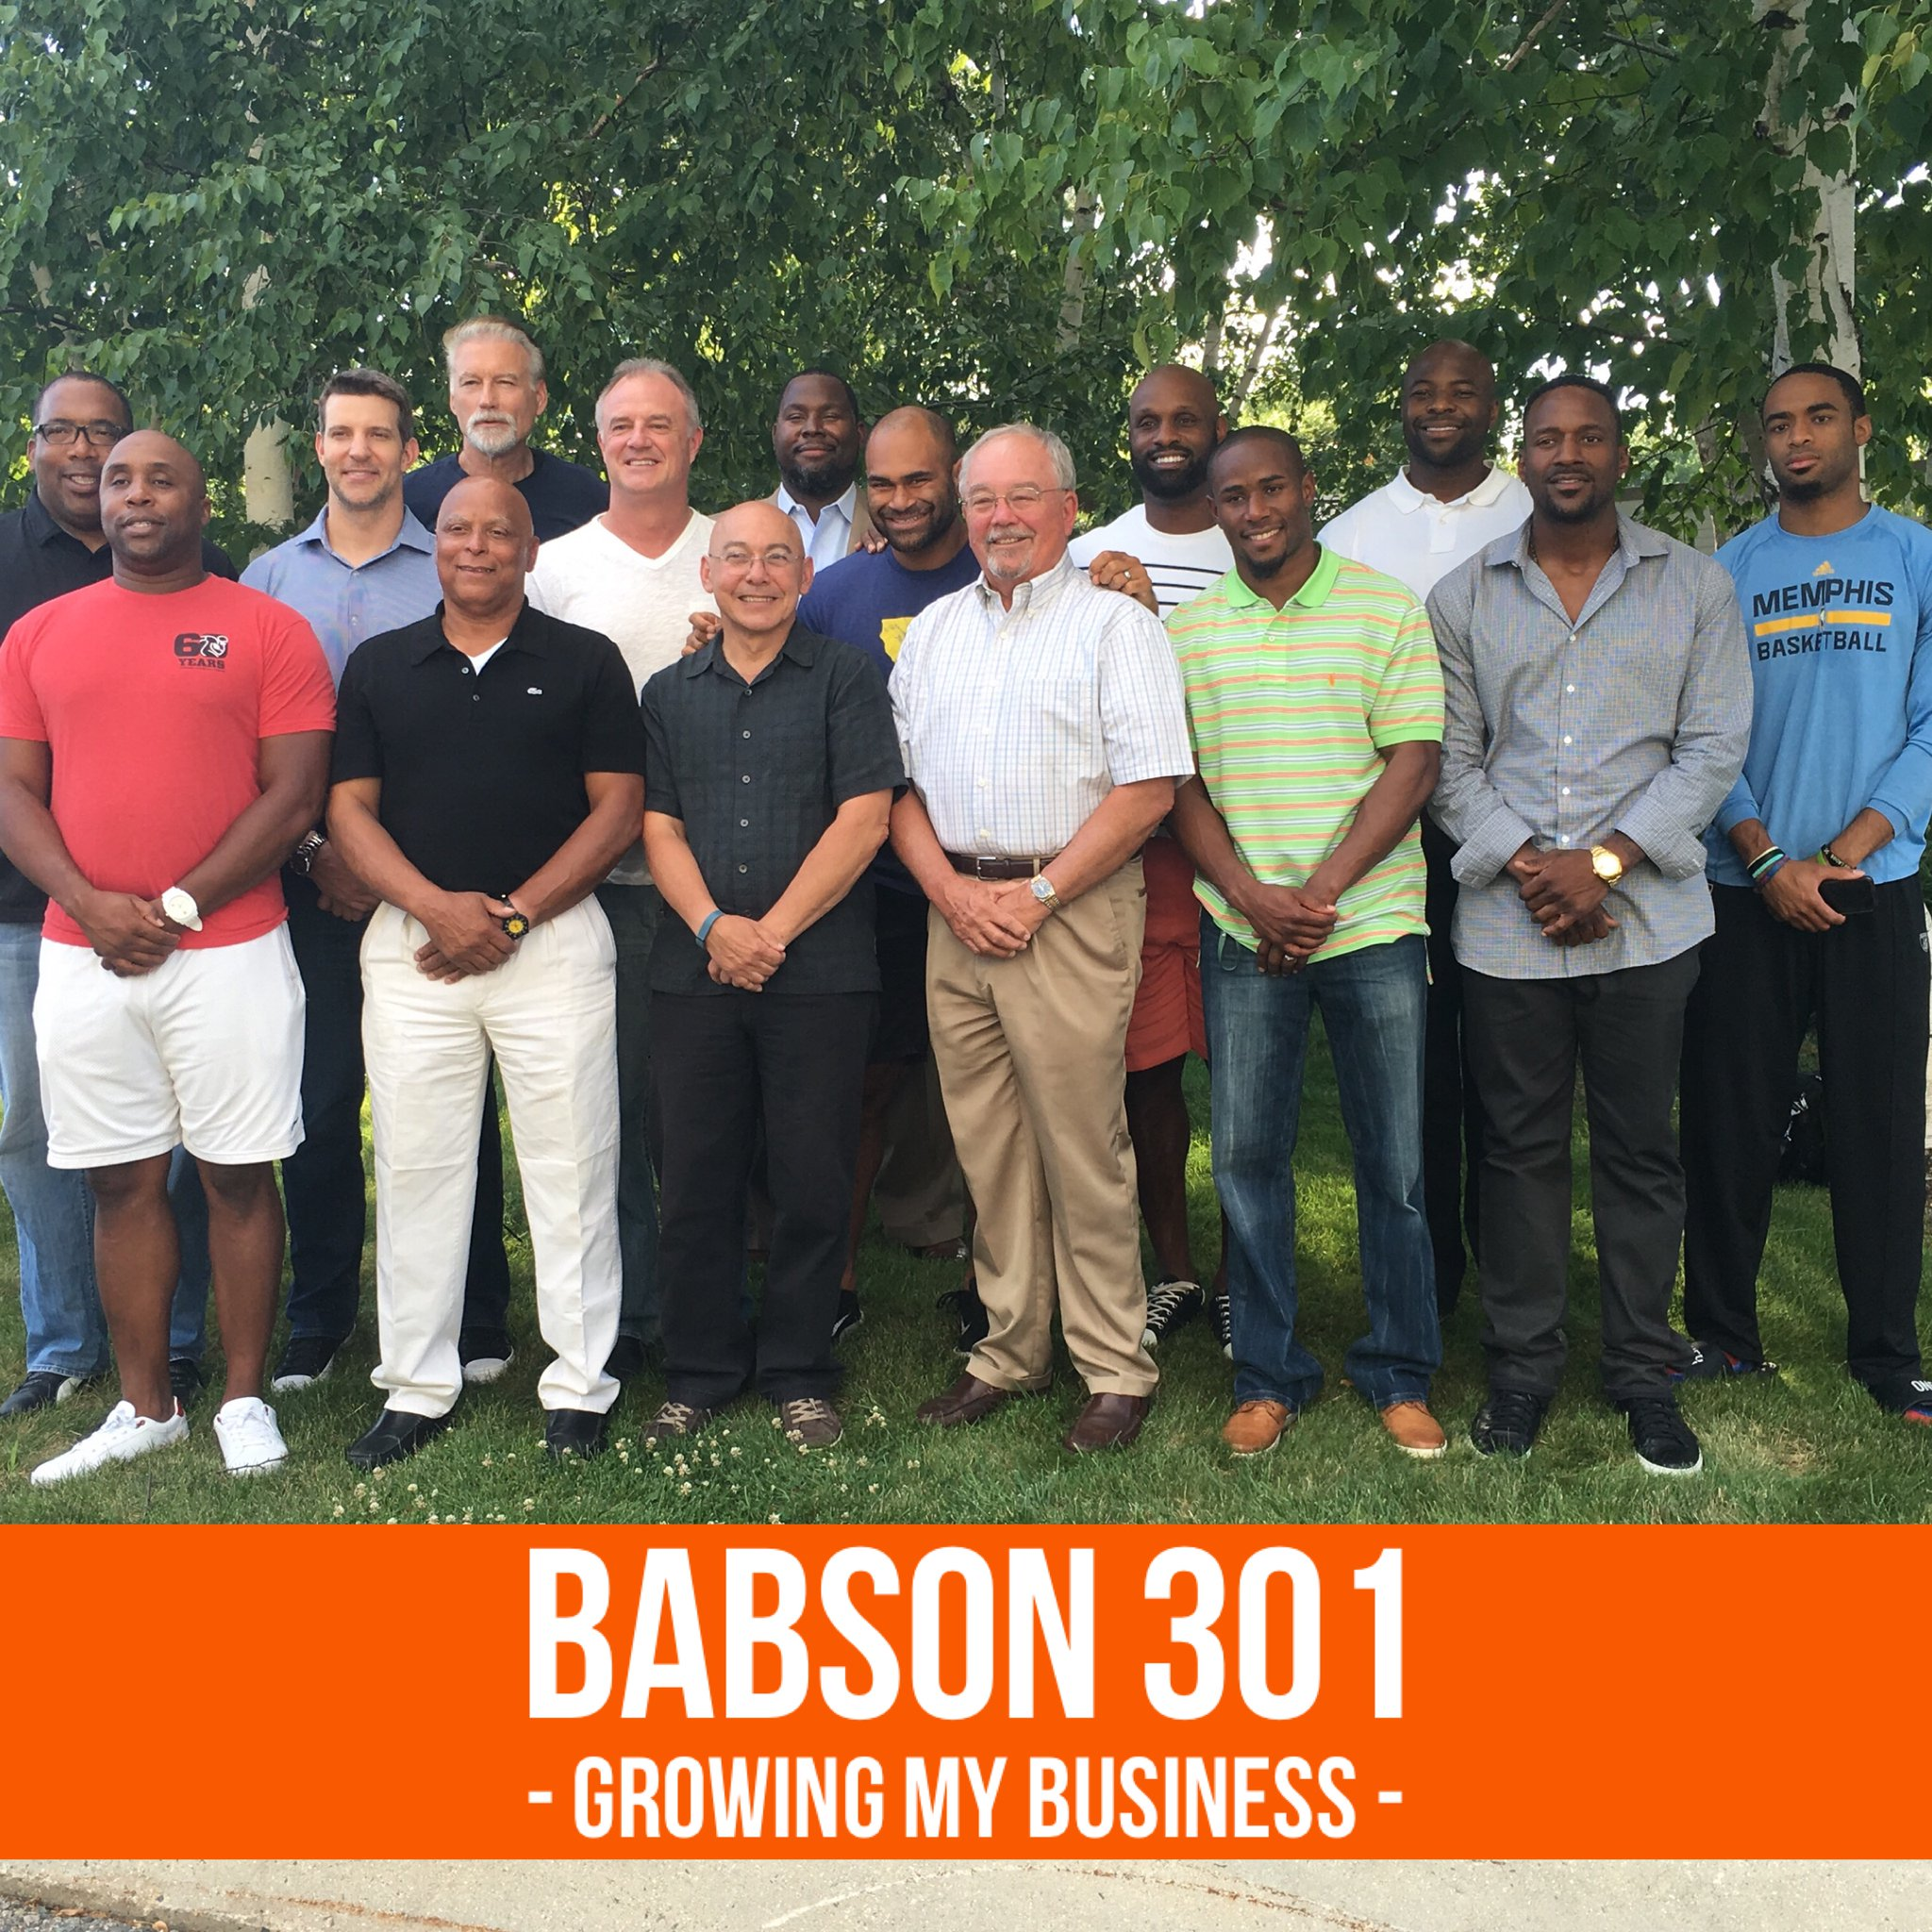 Babson 301